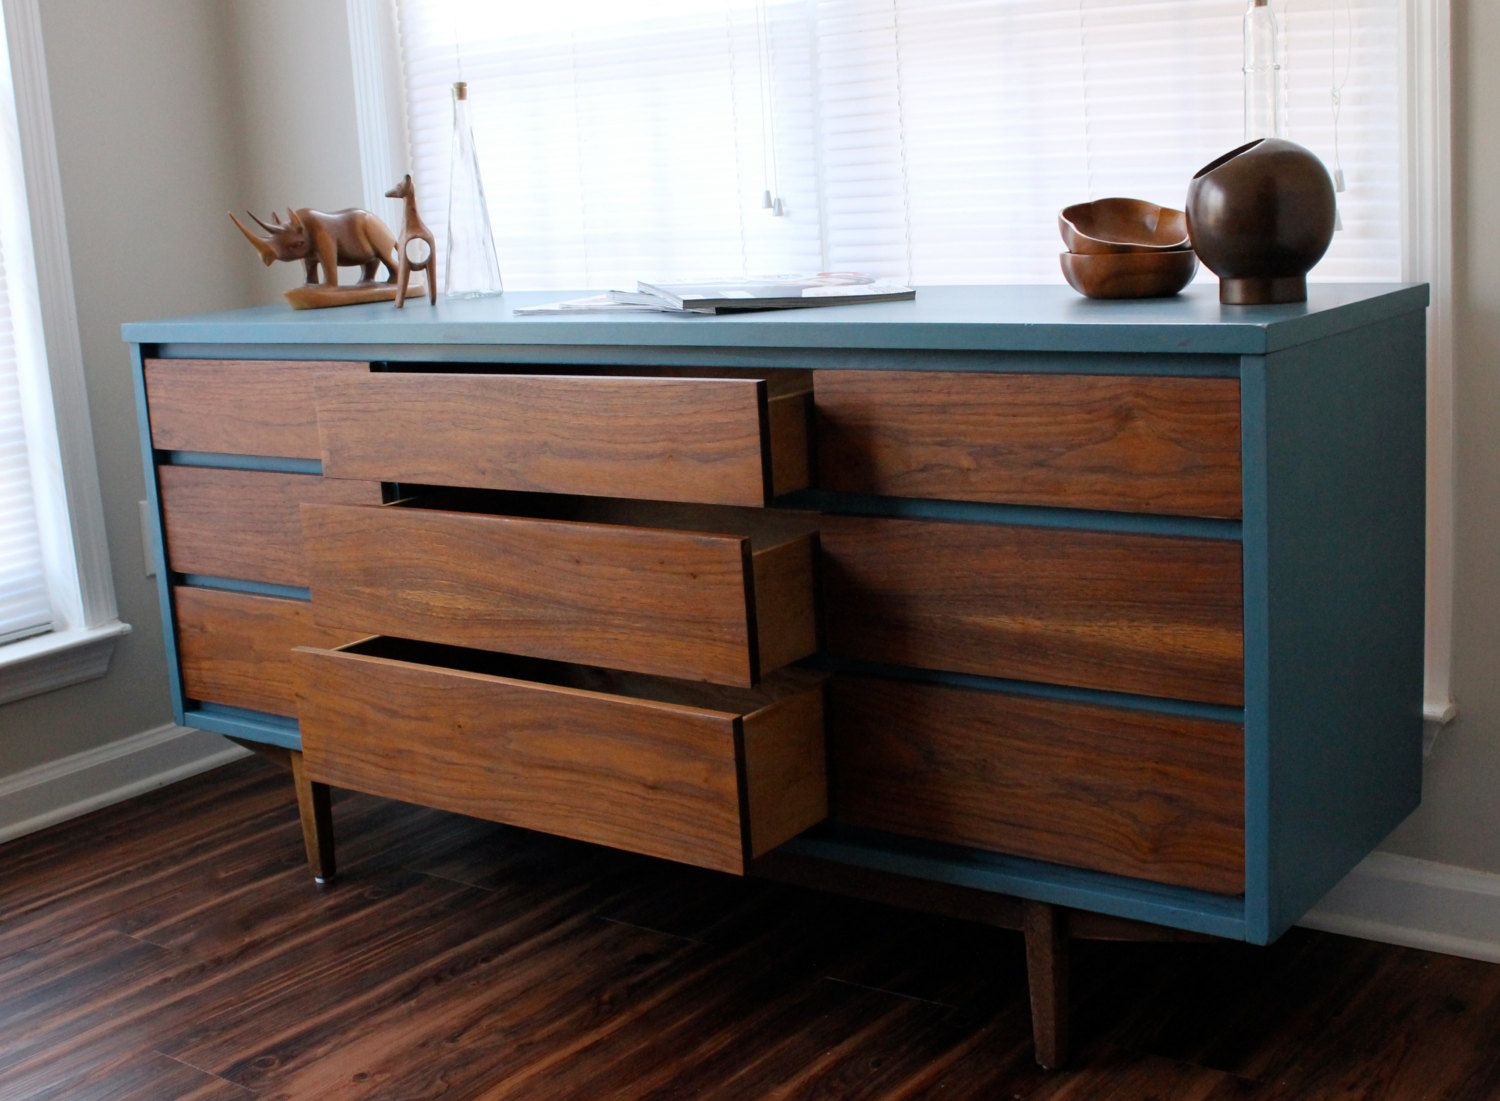 best  modern dresser ideas on pinterest  mid century modern  - midcentury modern dresser blue on hold